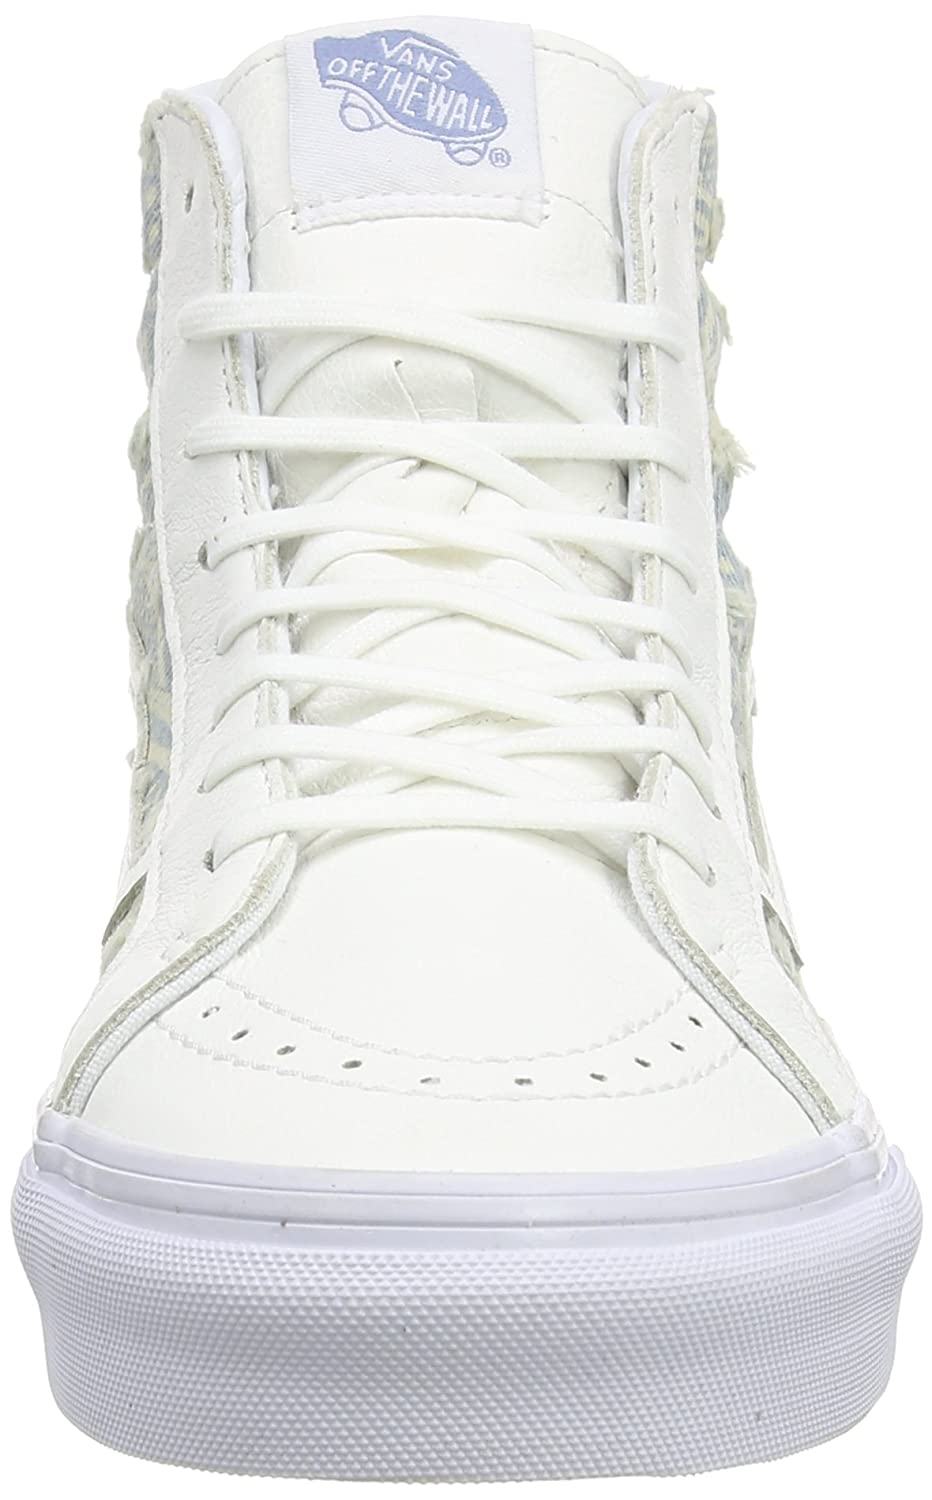 Vans Unisex Sk8-Hi Slim Women's Skate Shoe B017JONRYK 6.5 M US Women / 5 M US Men|True White